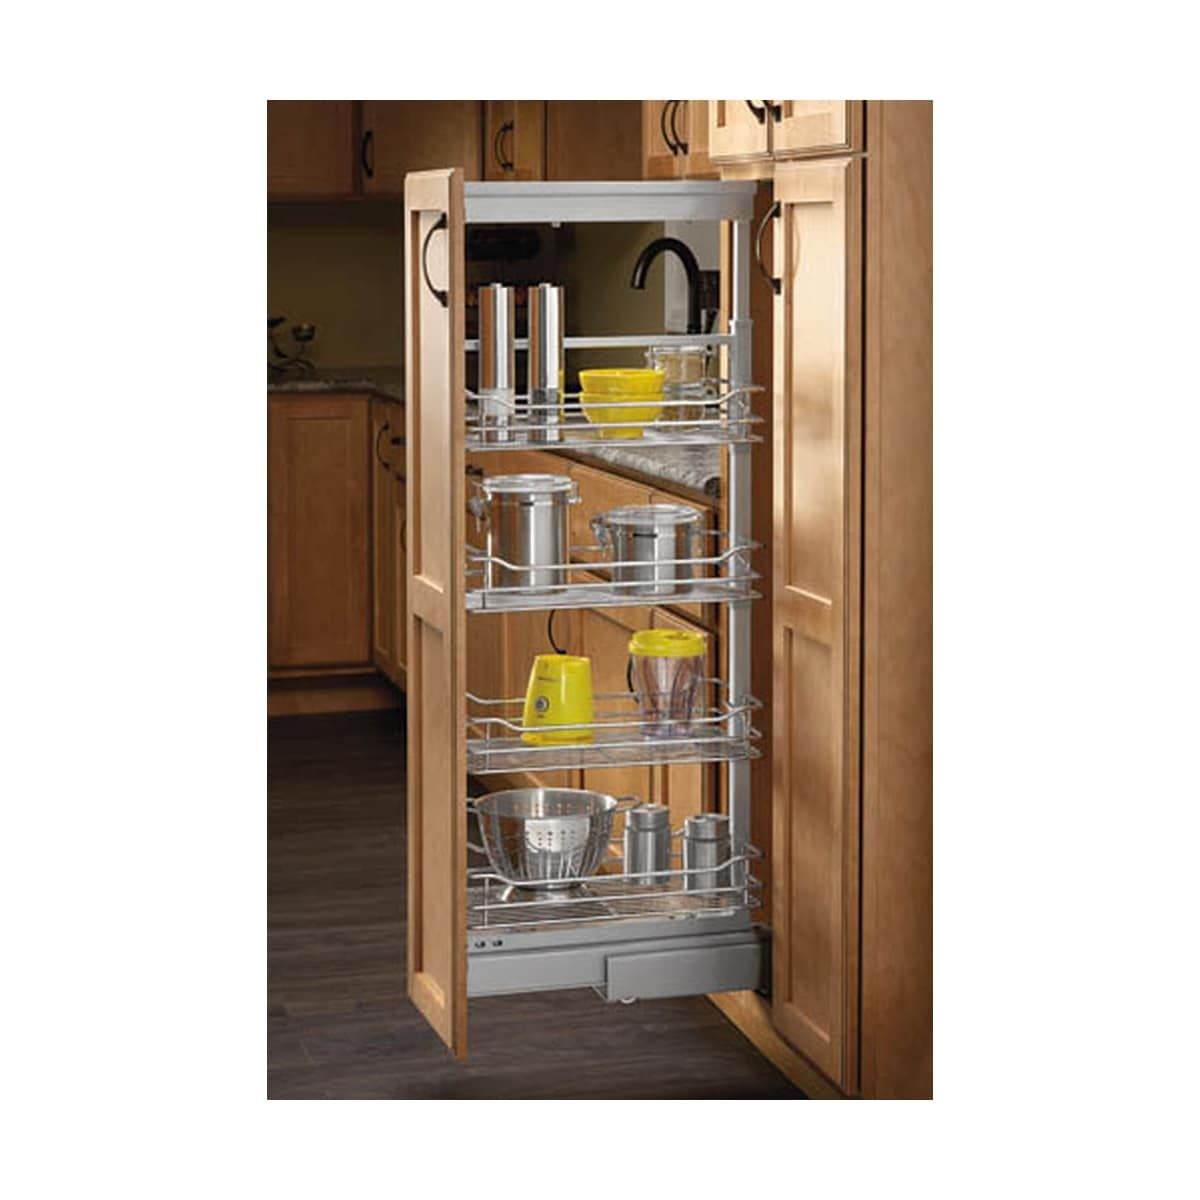 Rev A Shelf 5743 14 1 Build Com Rev A Shelf Pull Out Pantry Cabinets Organization